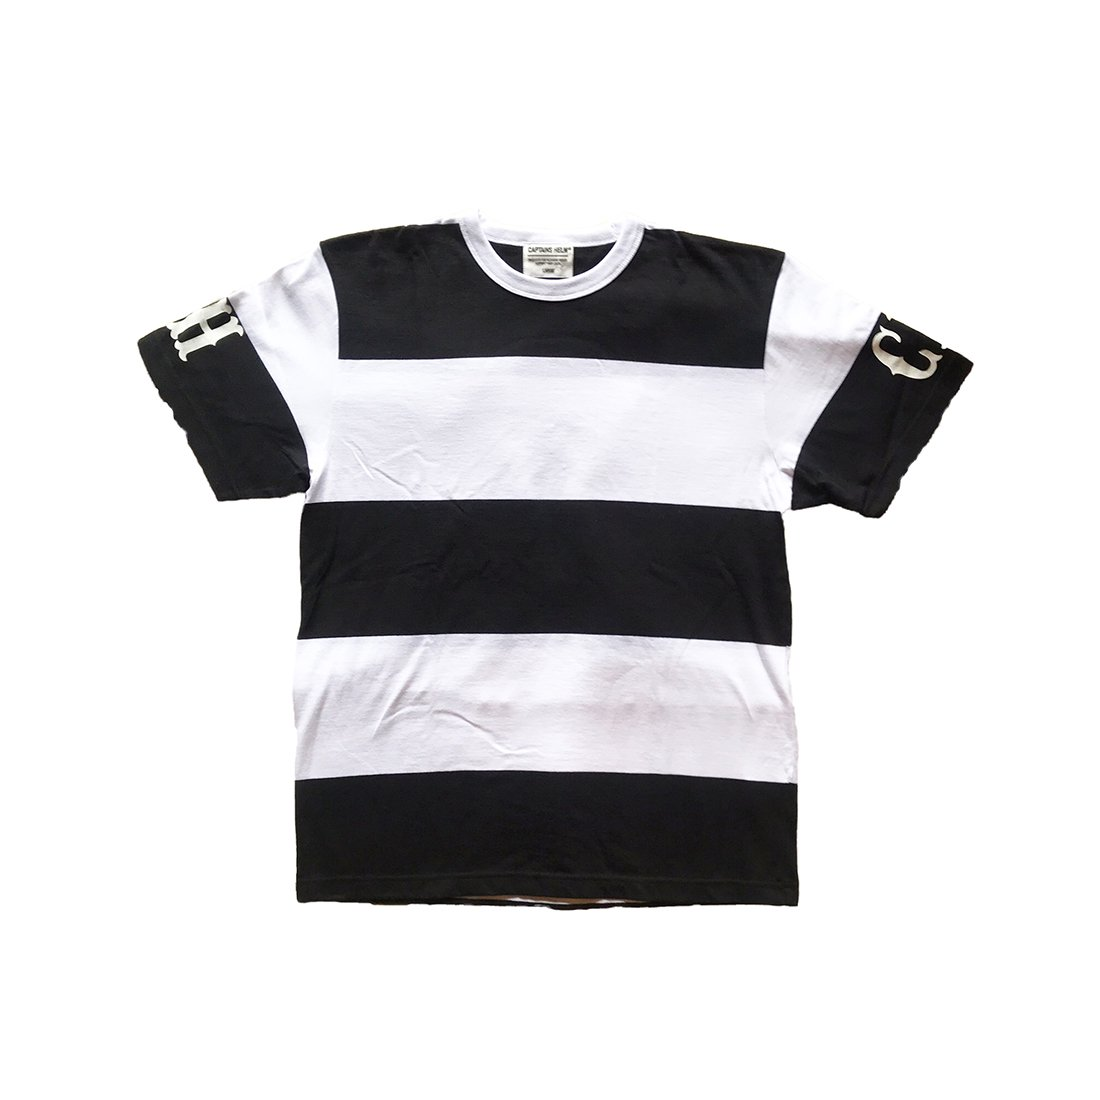 CAPTAINS HELM #LOCALS BORDER TEE